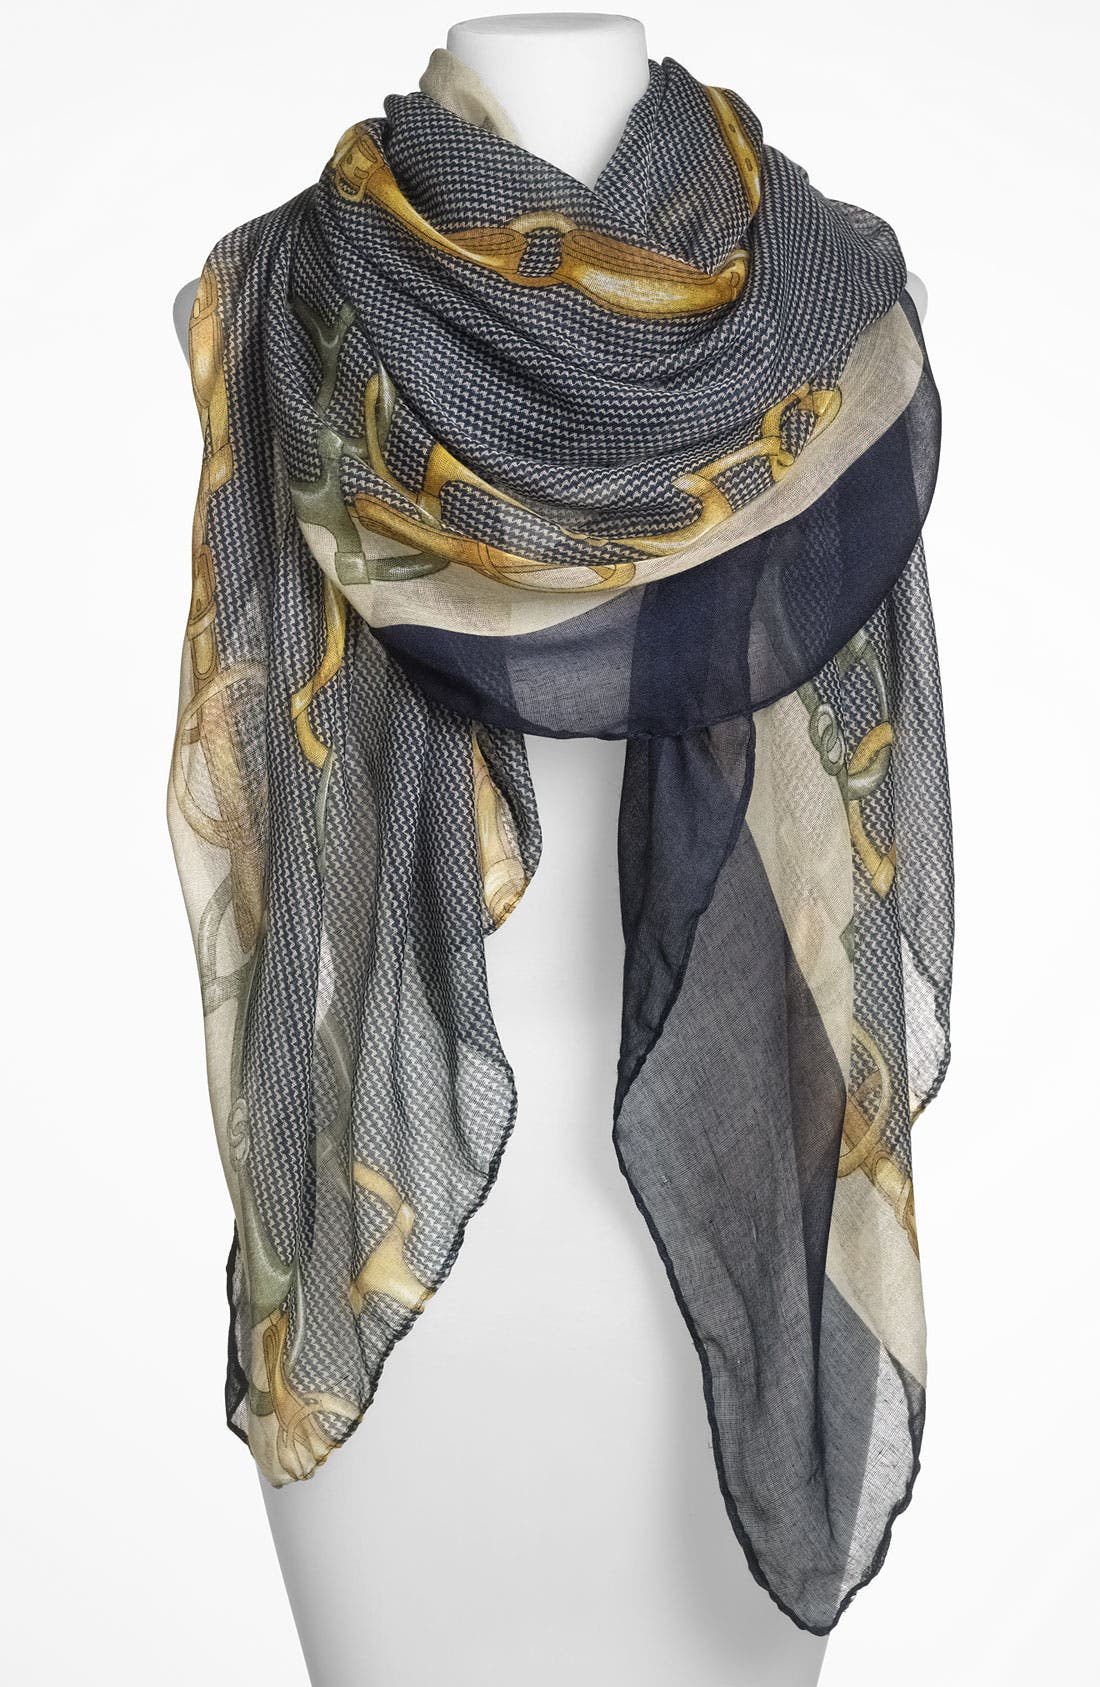 Alternate Image 1 Selected - Lulu Equestrian Print Sheer Scarf